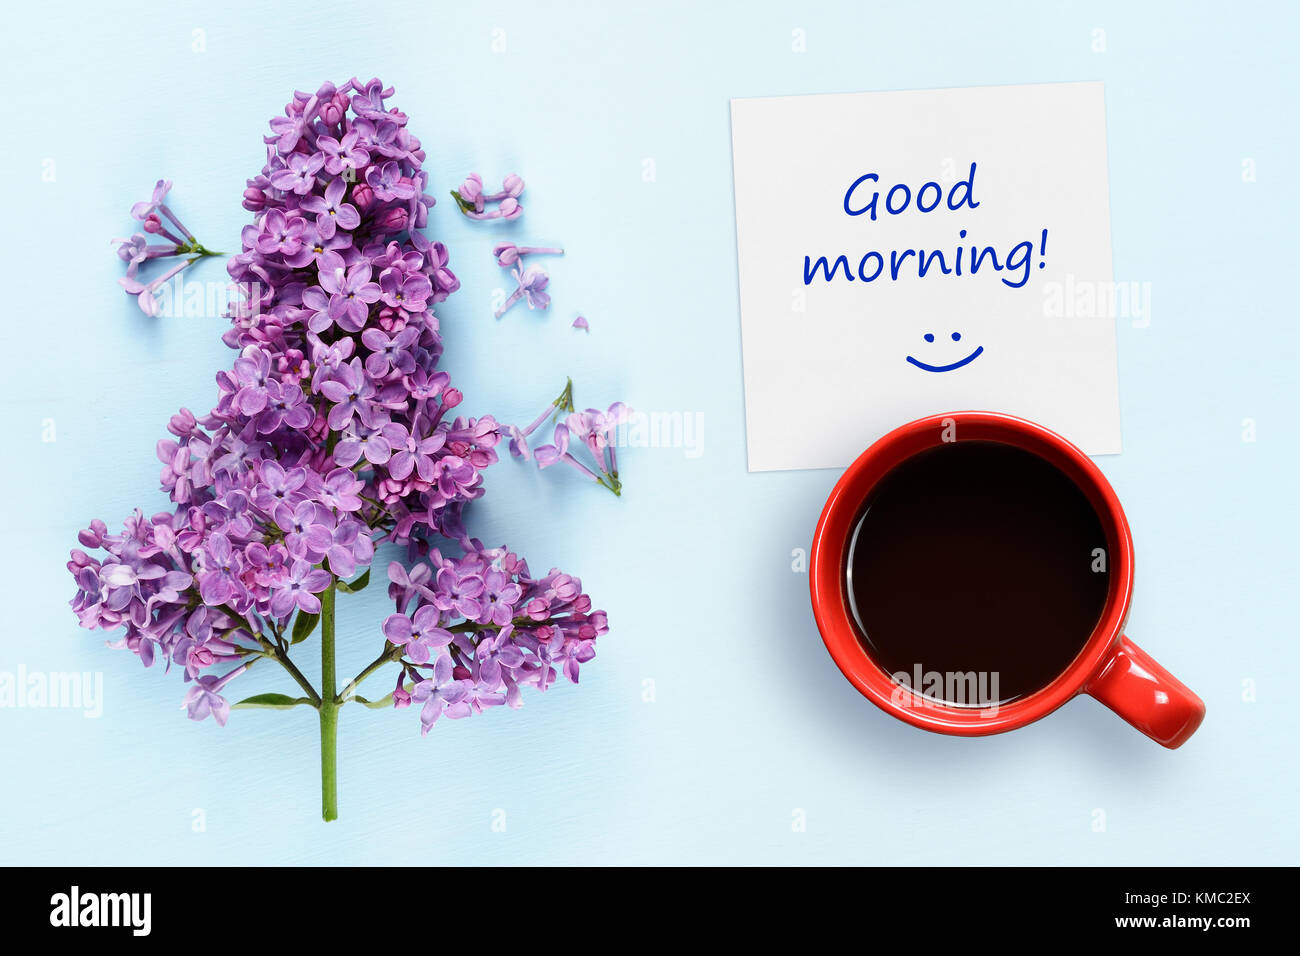 Good Morning Wishes Coffee Cup And Lilac Flowers On Blue Background